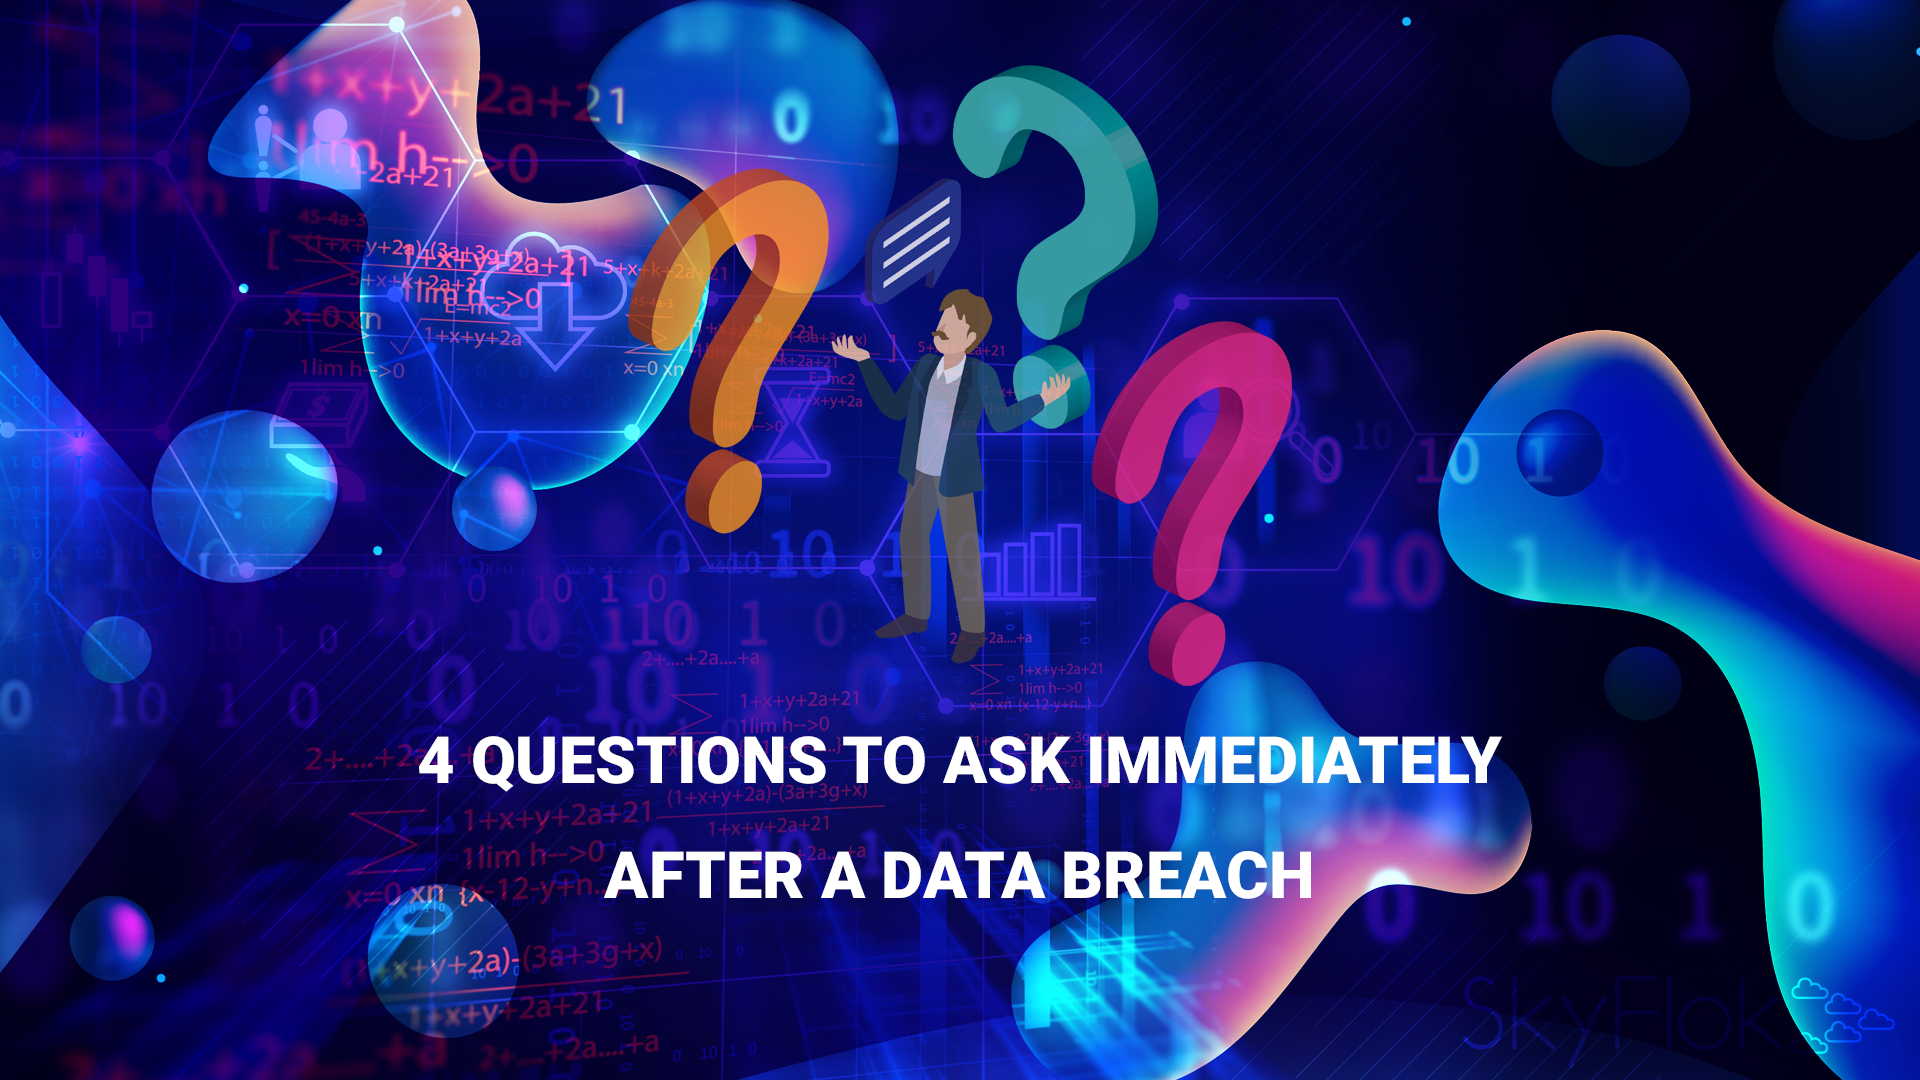 4 Questions To Ask Immediately After A Data Breach